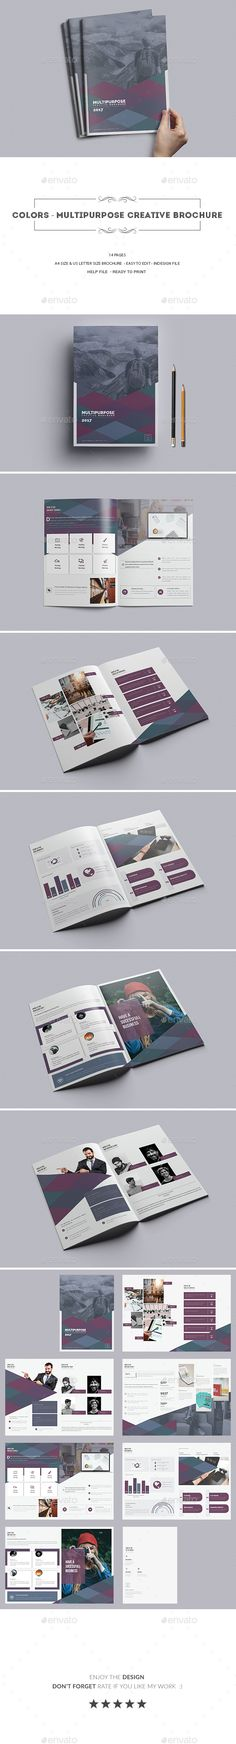 Colors Multipurpose Creative brochure — InDesign INDD #colorful #cmyk • Download ➝ https://graphicriver.net/item/colors-multipurpose-creative-brochure/19580196?ref=pxcr